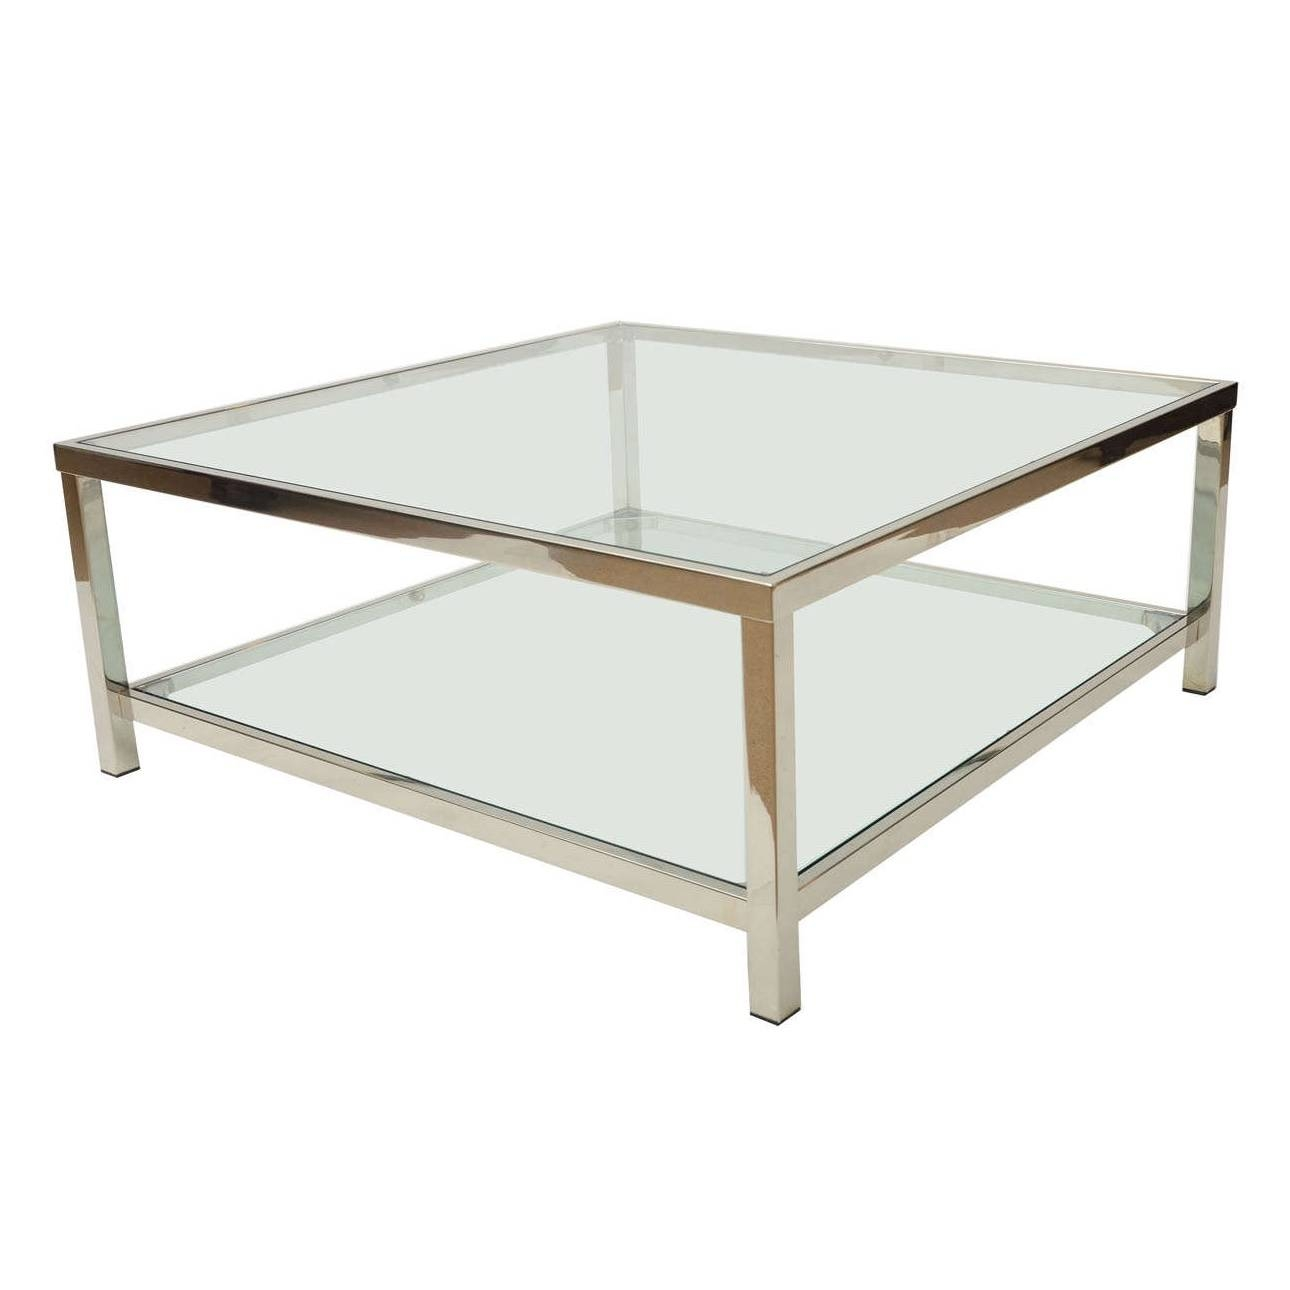 Square Glass Coffee Table For – Cocinacentral.co throughout Large Square Glass Coffee Tables (Image 27 of 30)